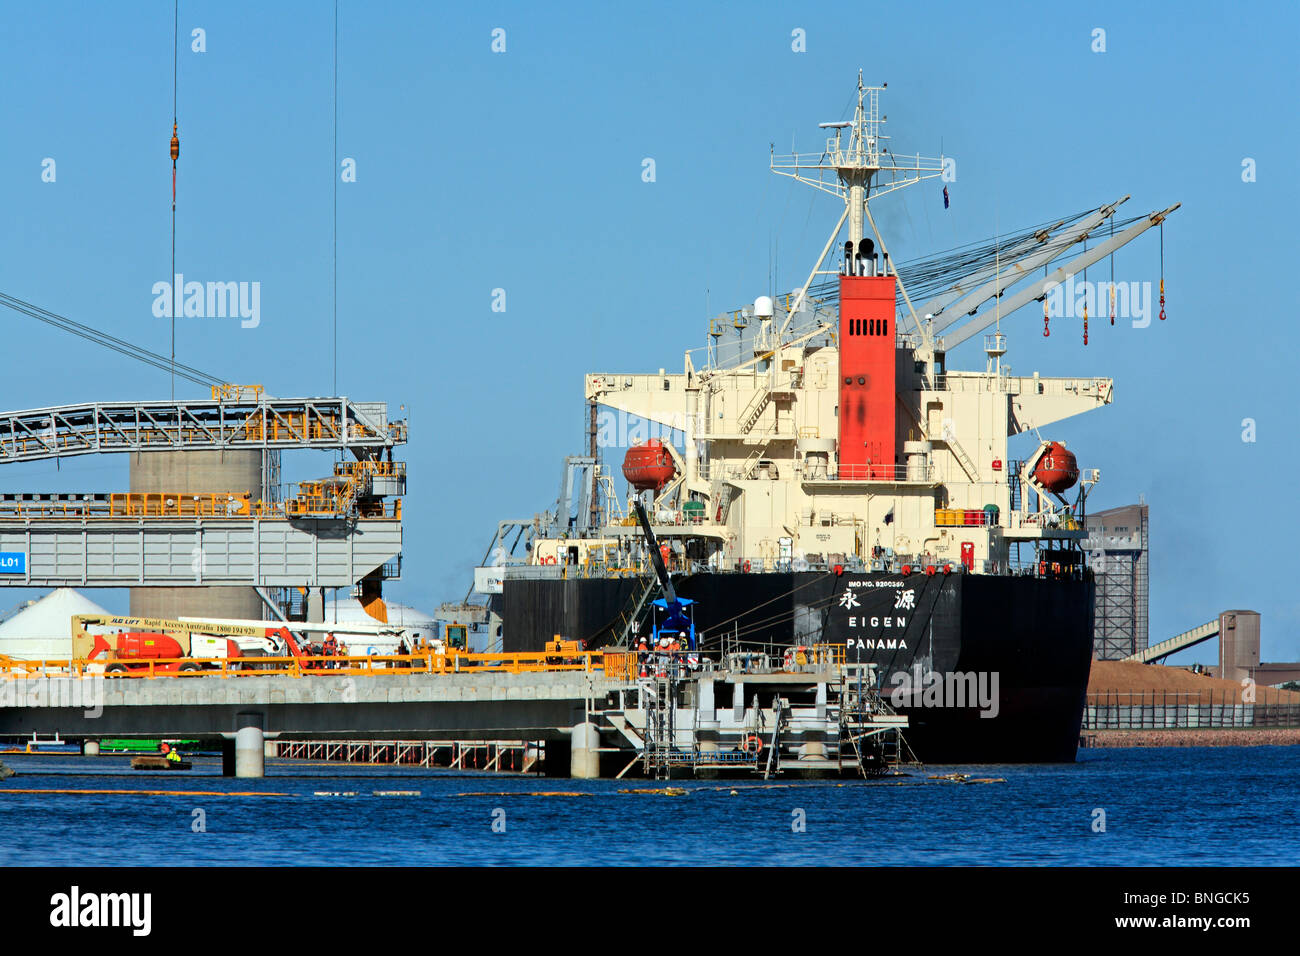 Bulk carrier loading cargo at the port of Newcastle, NSW, Australia - Stock Image